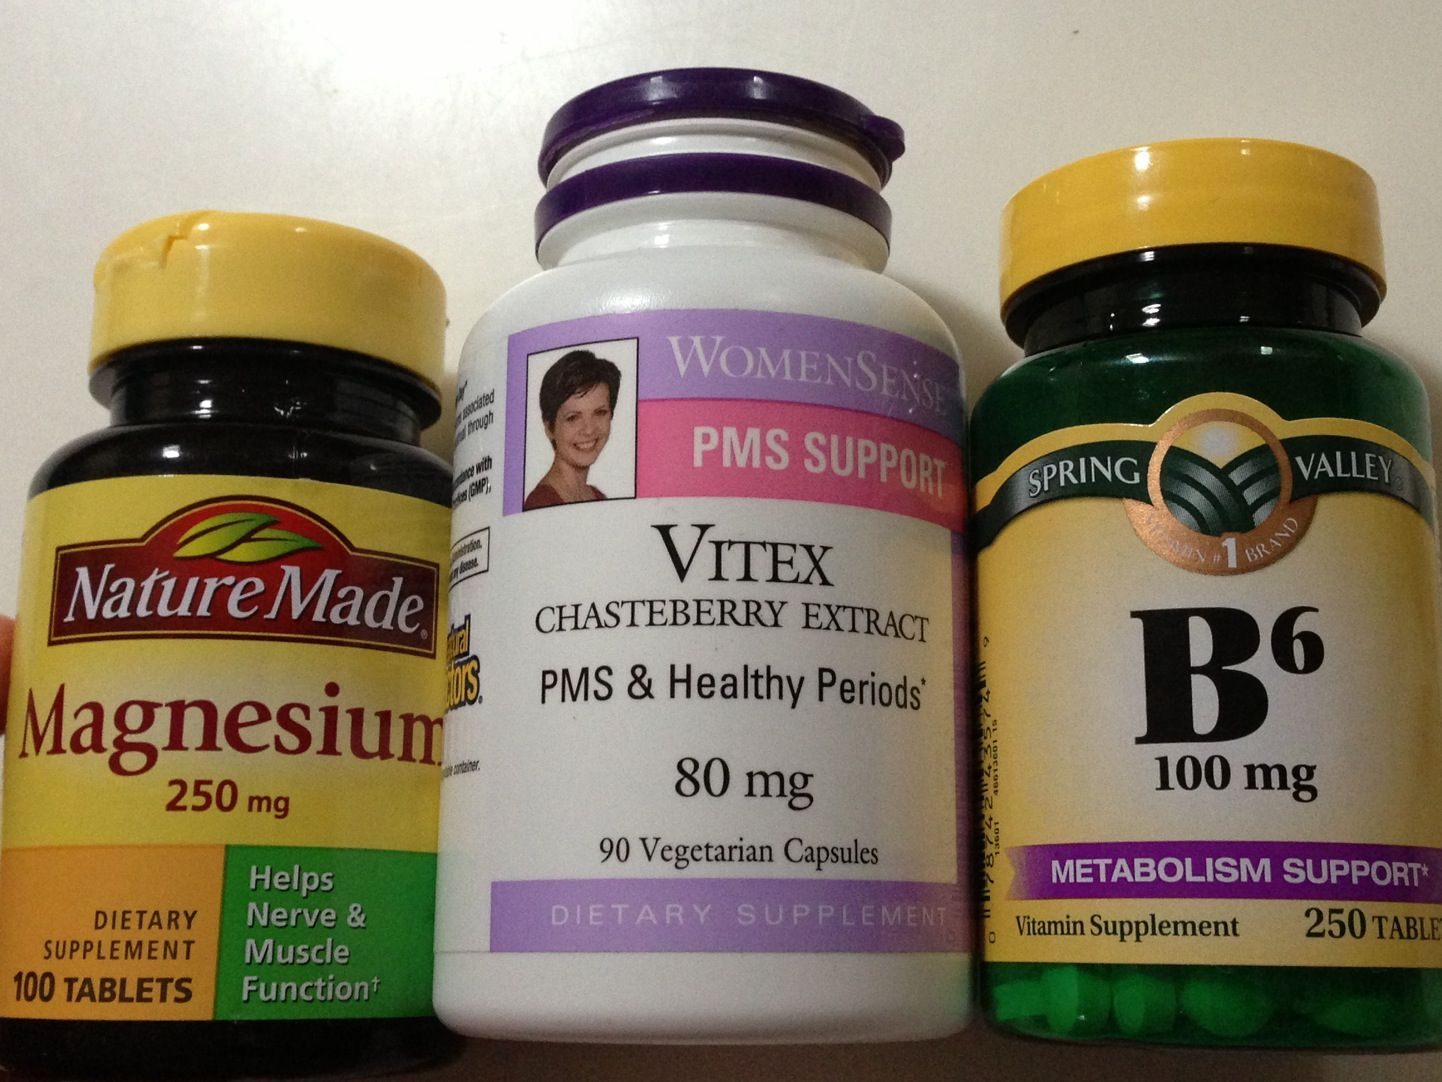 f119faa0c5e61065c46948ff4b040042 - How Long Should I Take Vitex To Get Pregnant